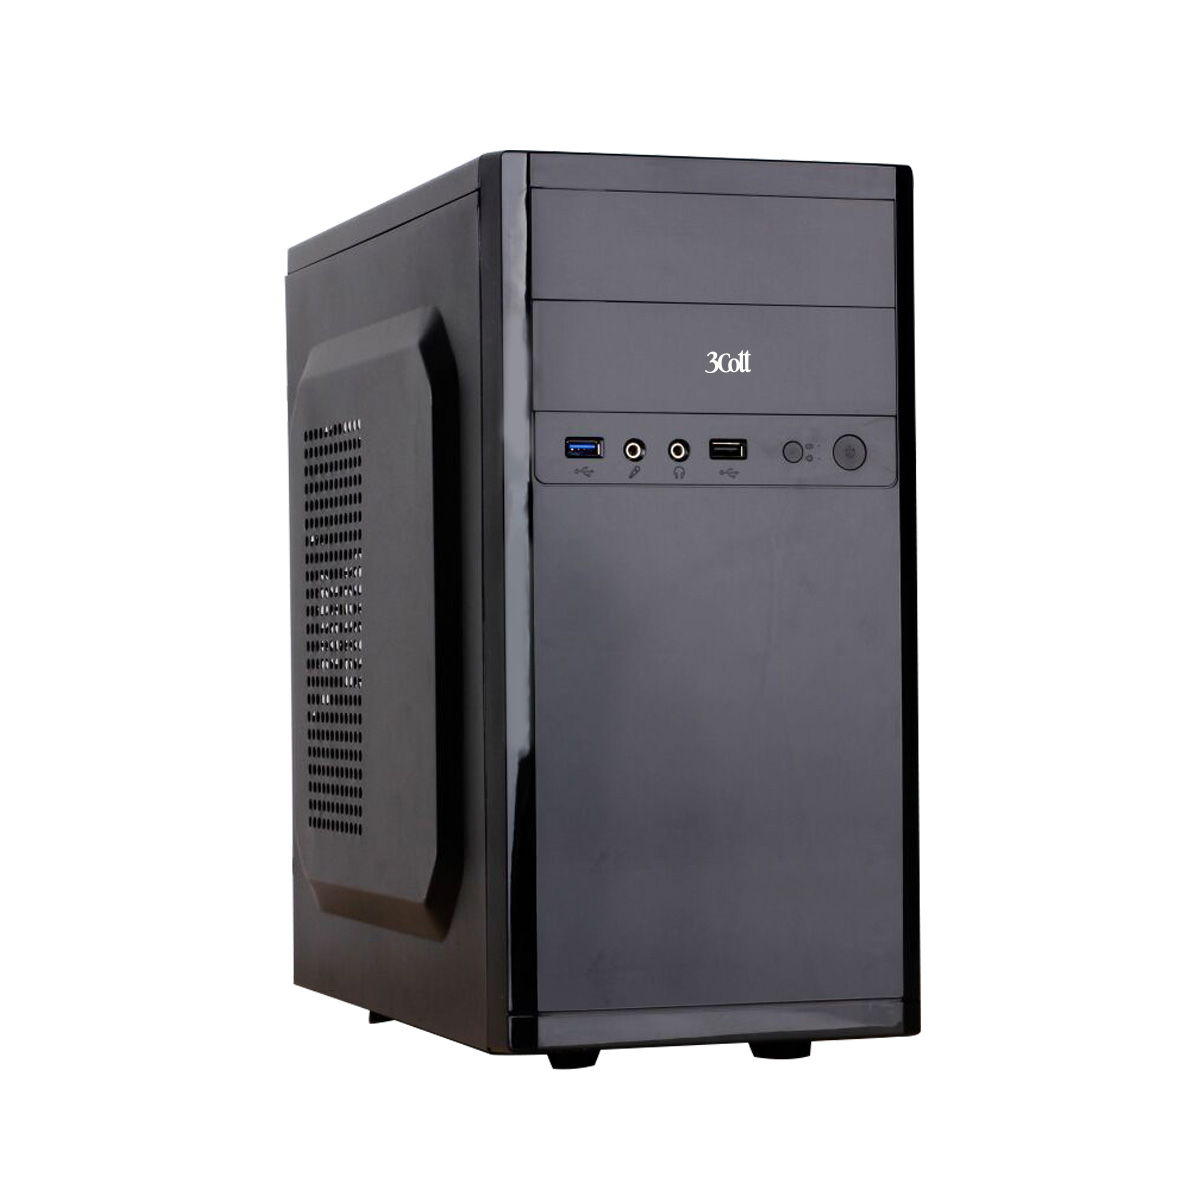 Компьютер Office 106 R >AMD A4 6300/2Gb/500Gb/D-Sub+Digital amd a4 6300 dual core cpu